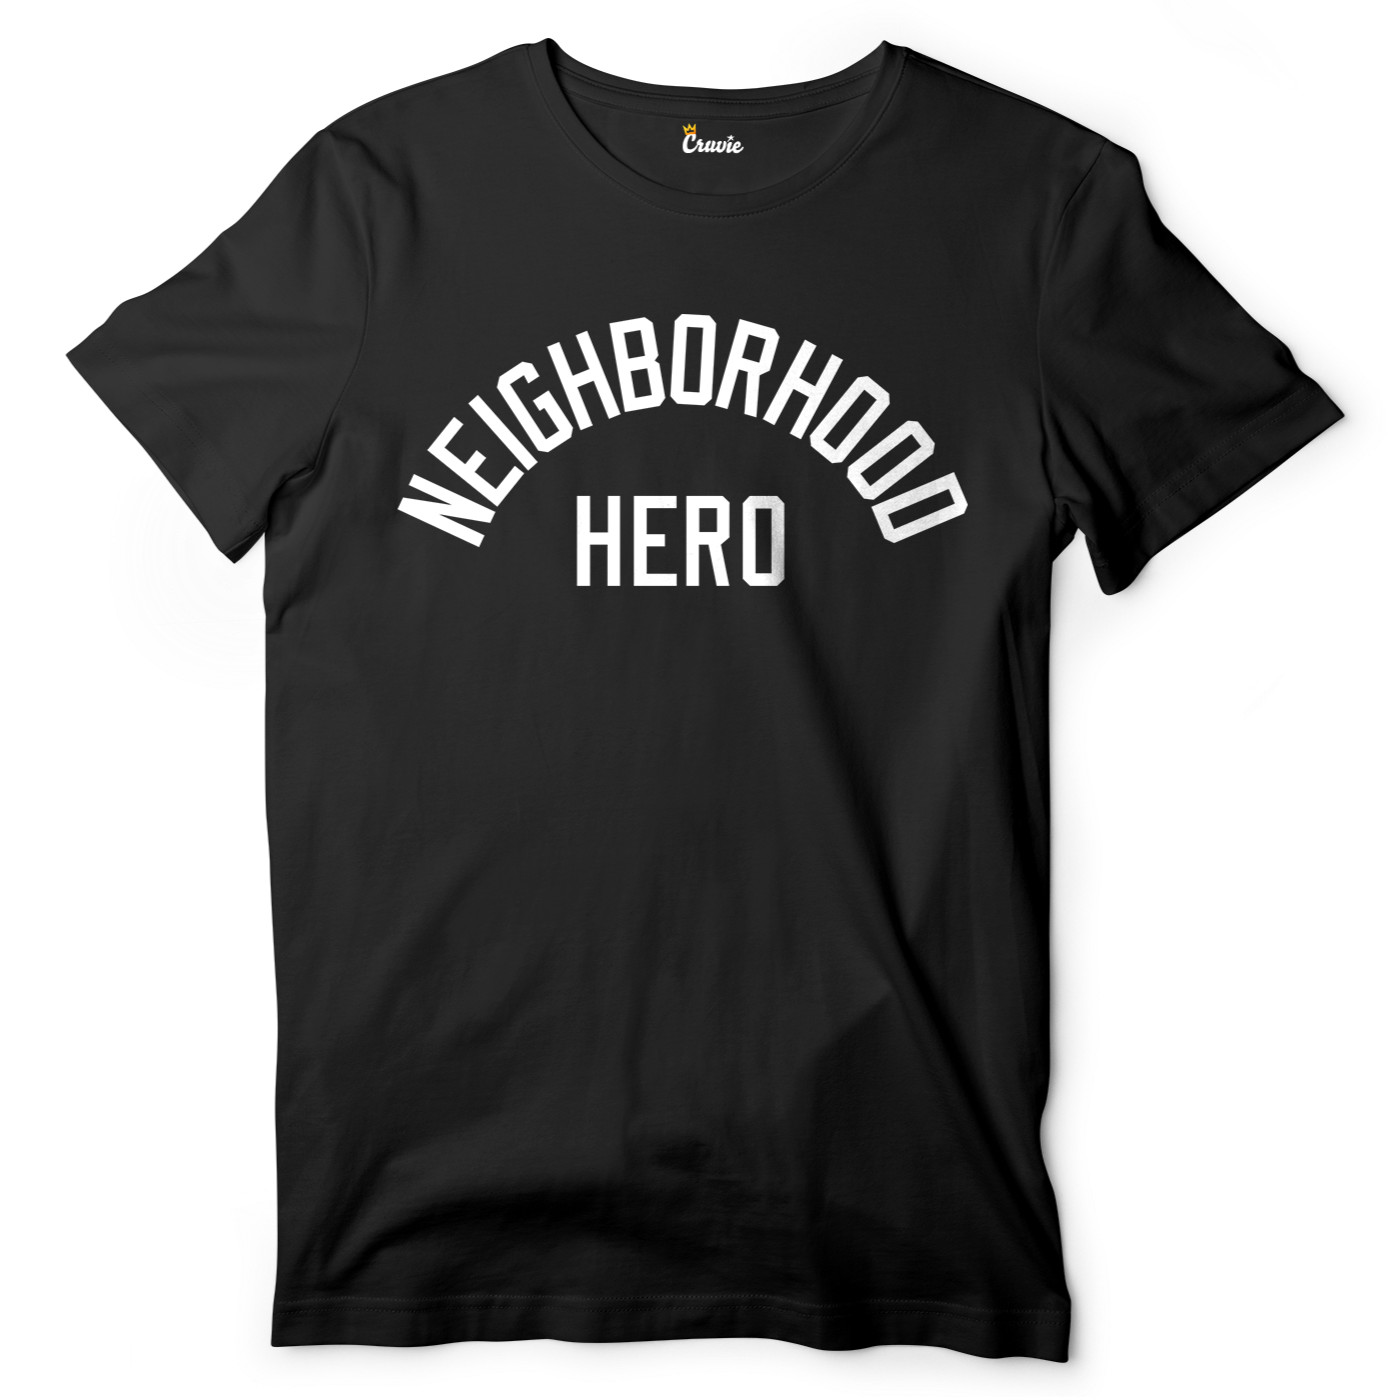 Neighborhood Hero | Cruvie